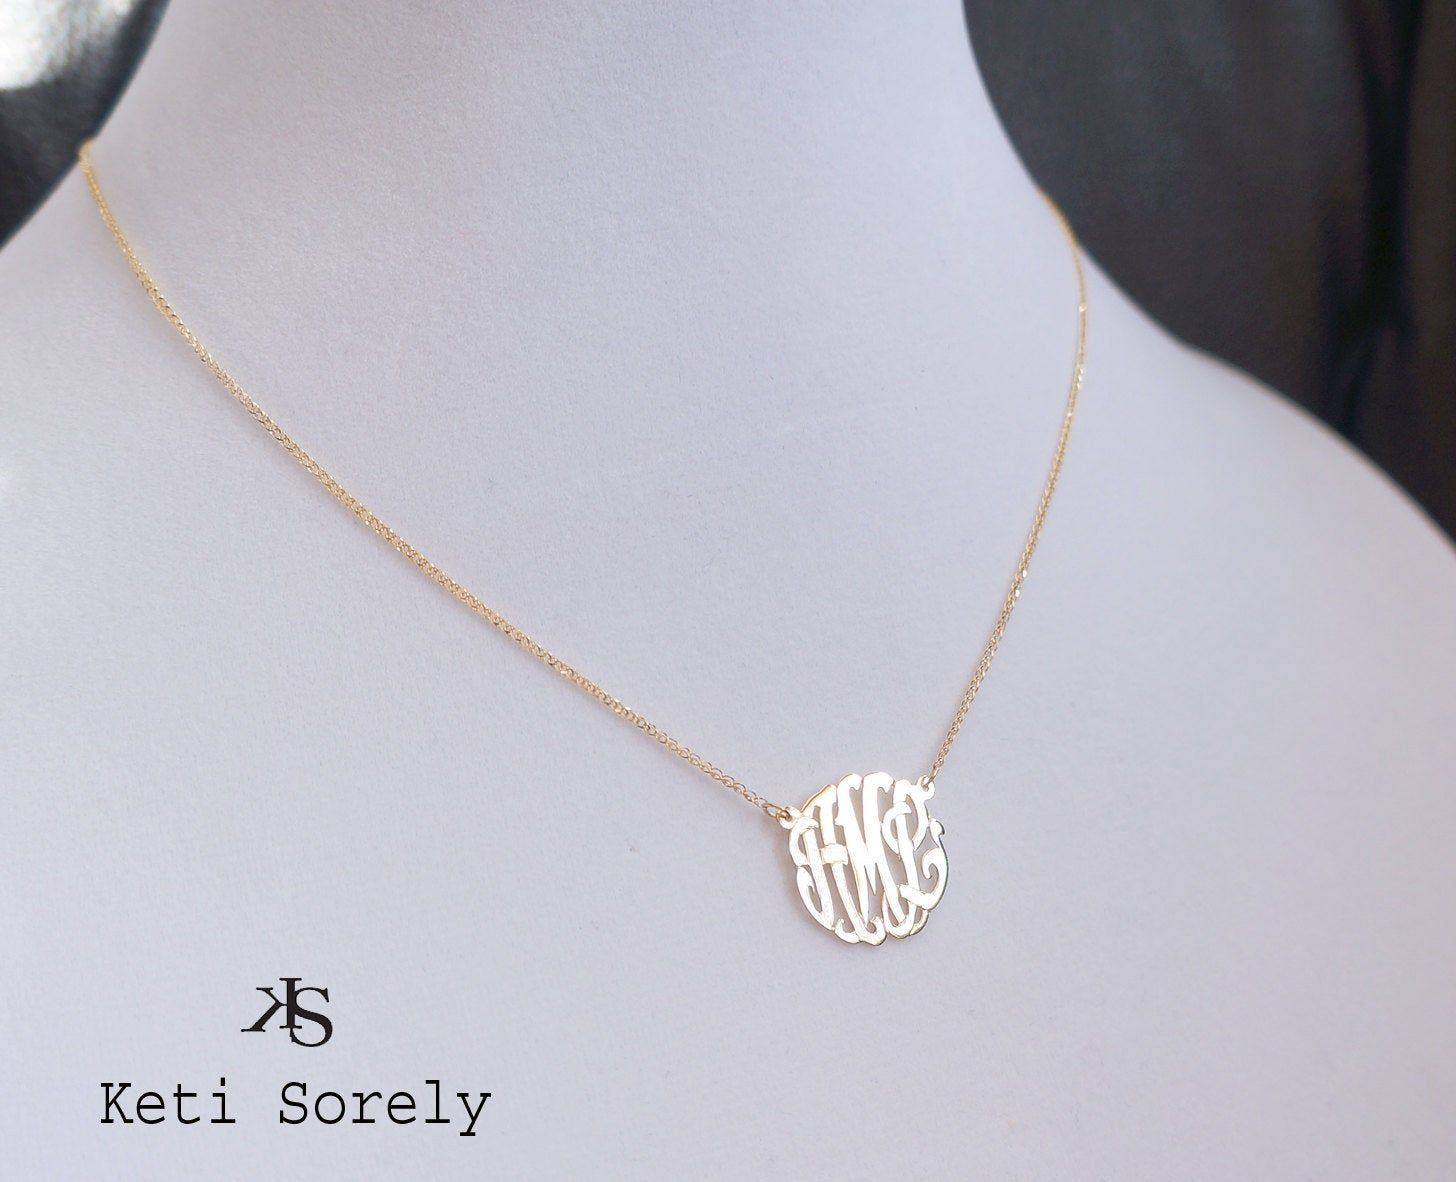 10k Yellow Rose Or White Solid Gold Monogram Necklace Etsy Monogram Necklace Gold Monogram Necklace Etsy Monogram Necklace